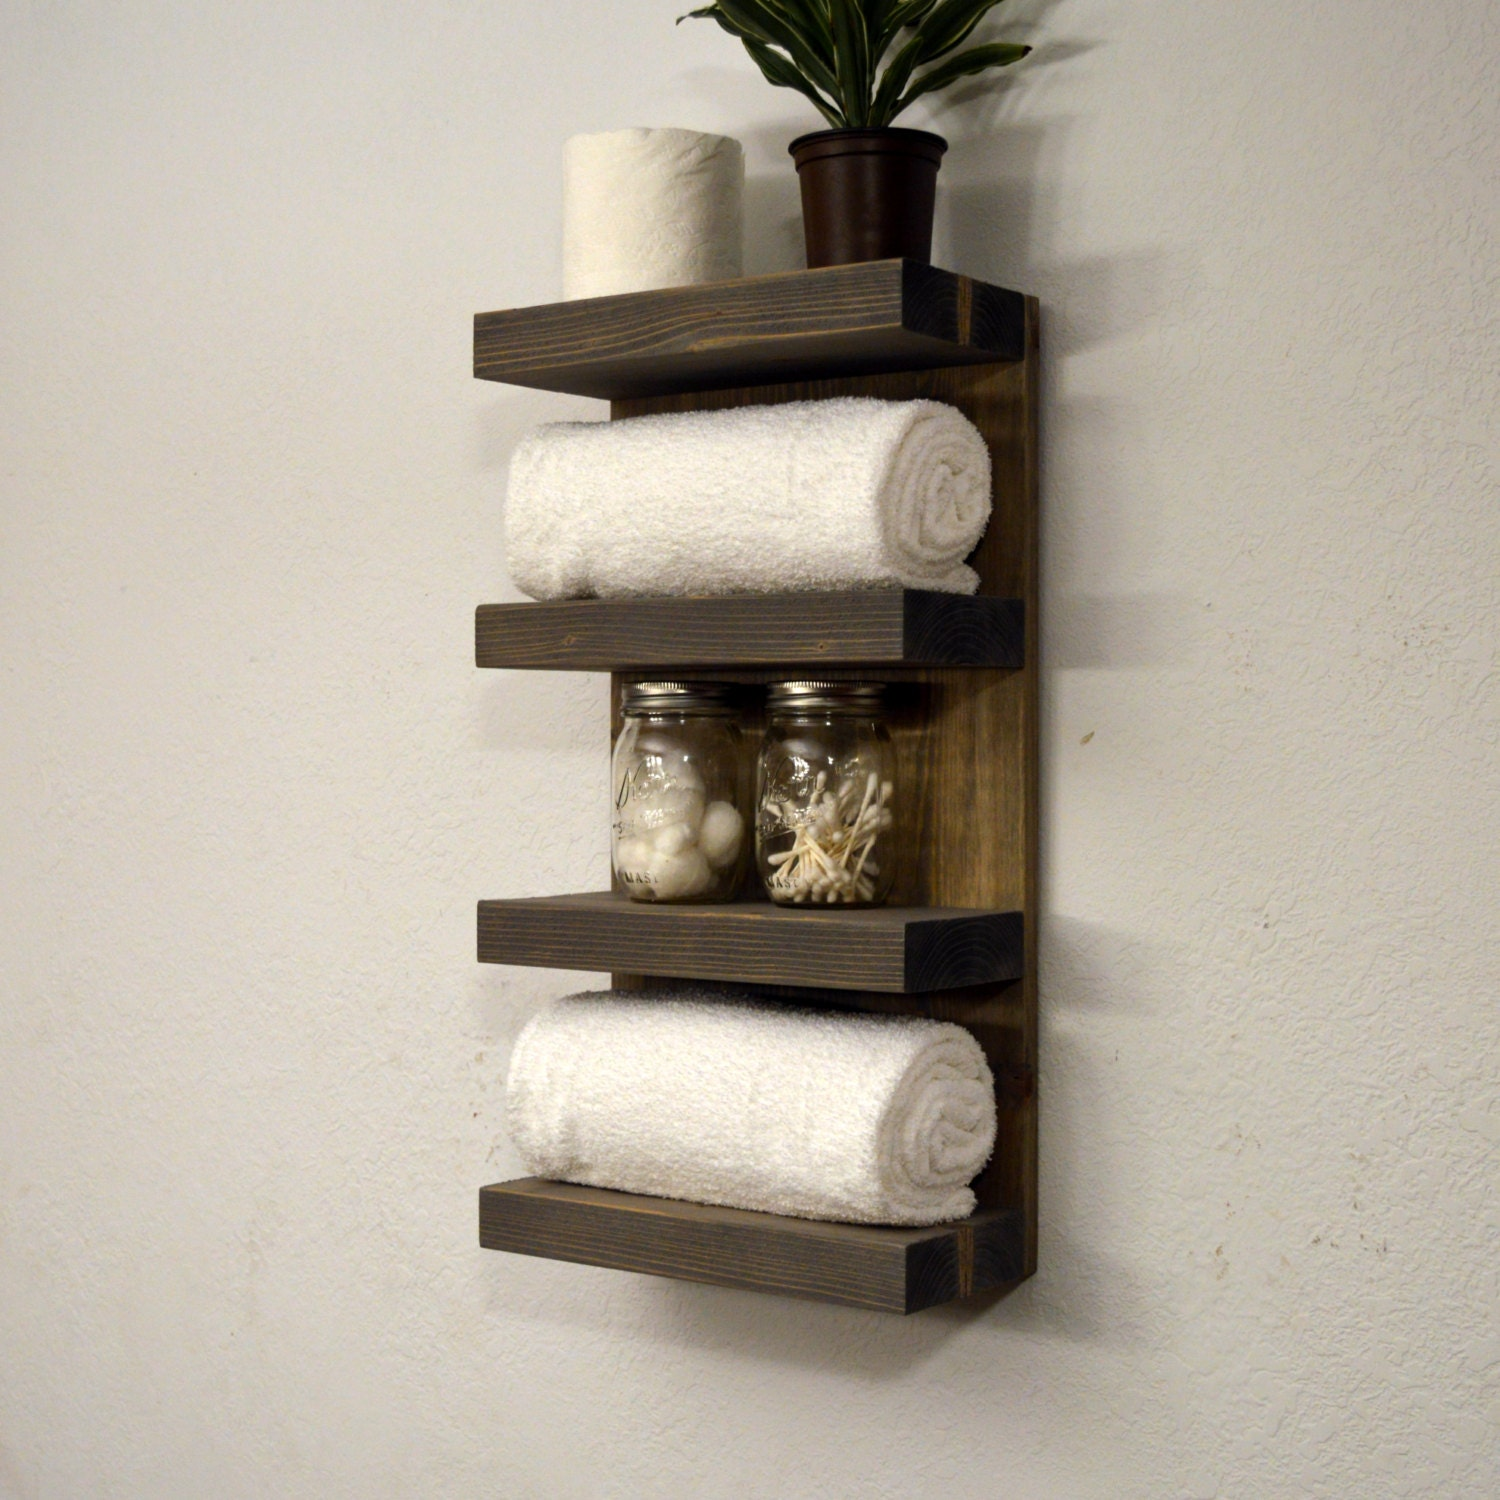 hotel style towel rack 4 tier bath storage by rusticmoderndecor. Black Bedroom Furniture Sets. Home Design Ideas